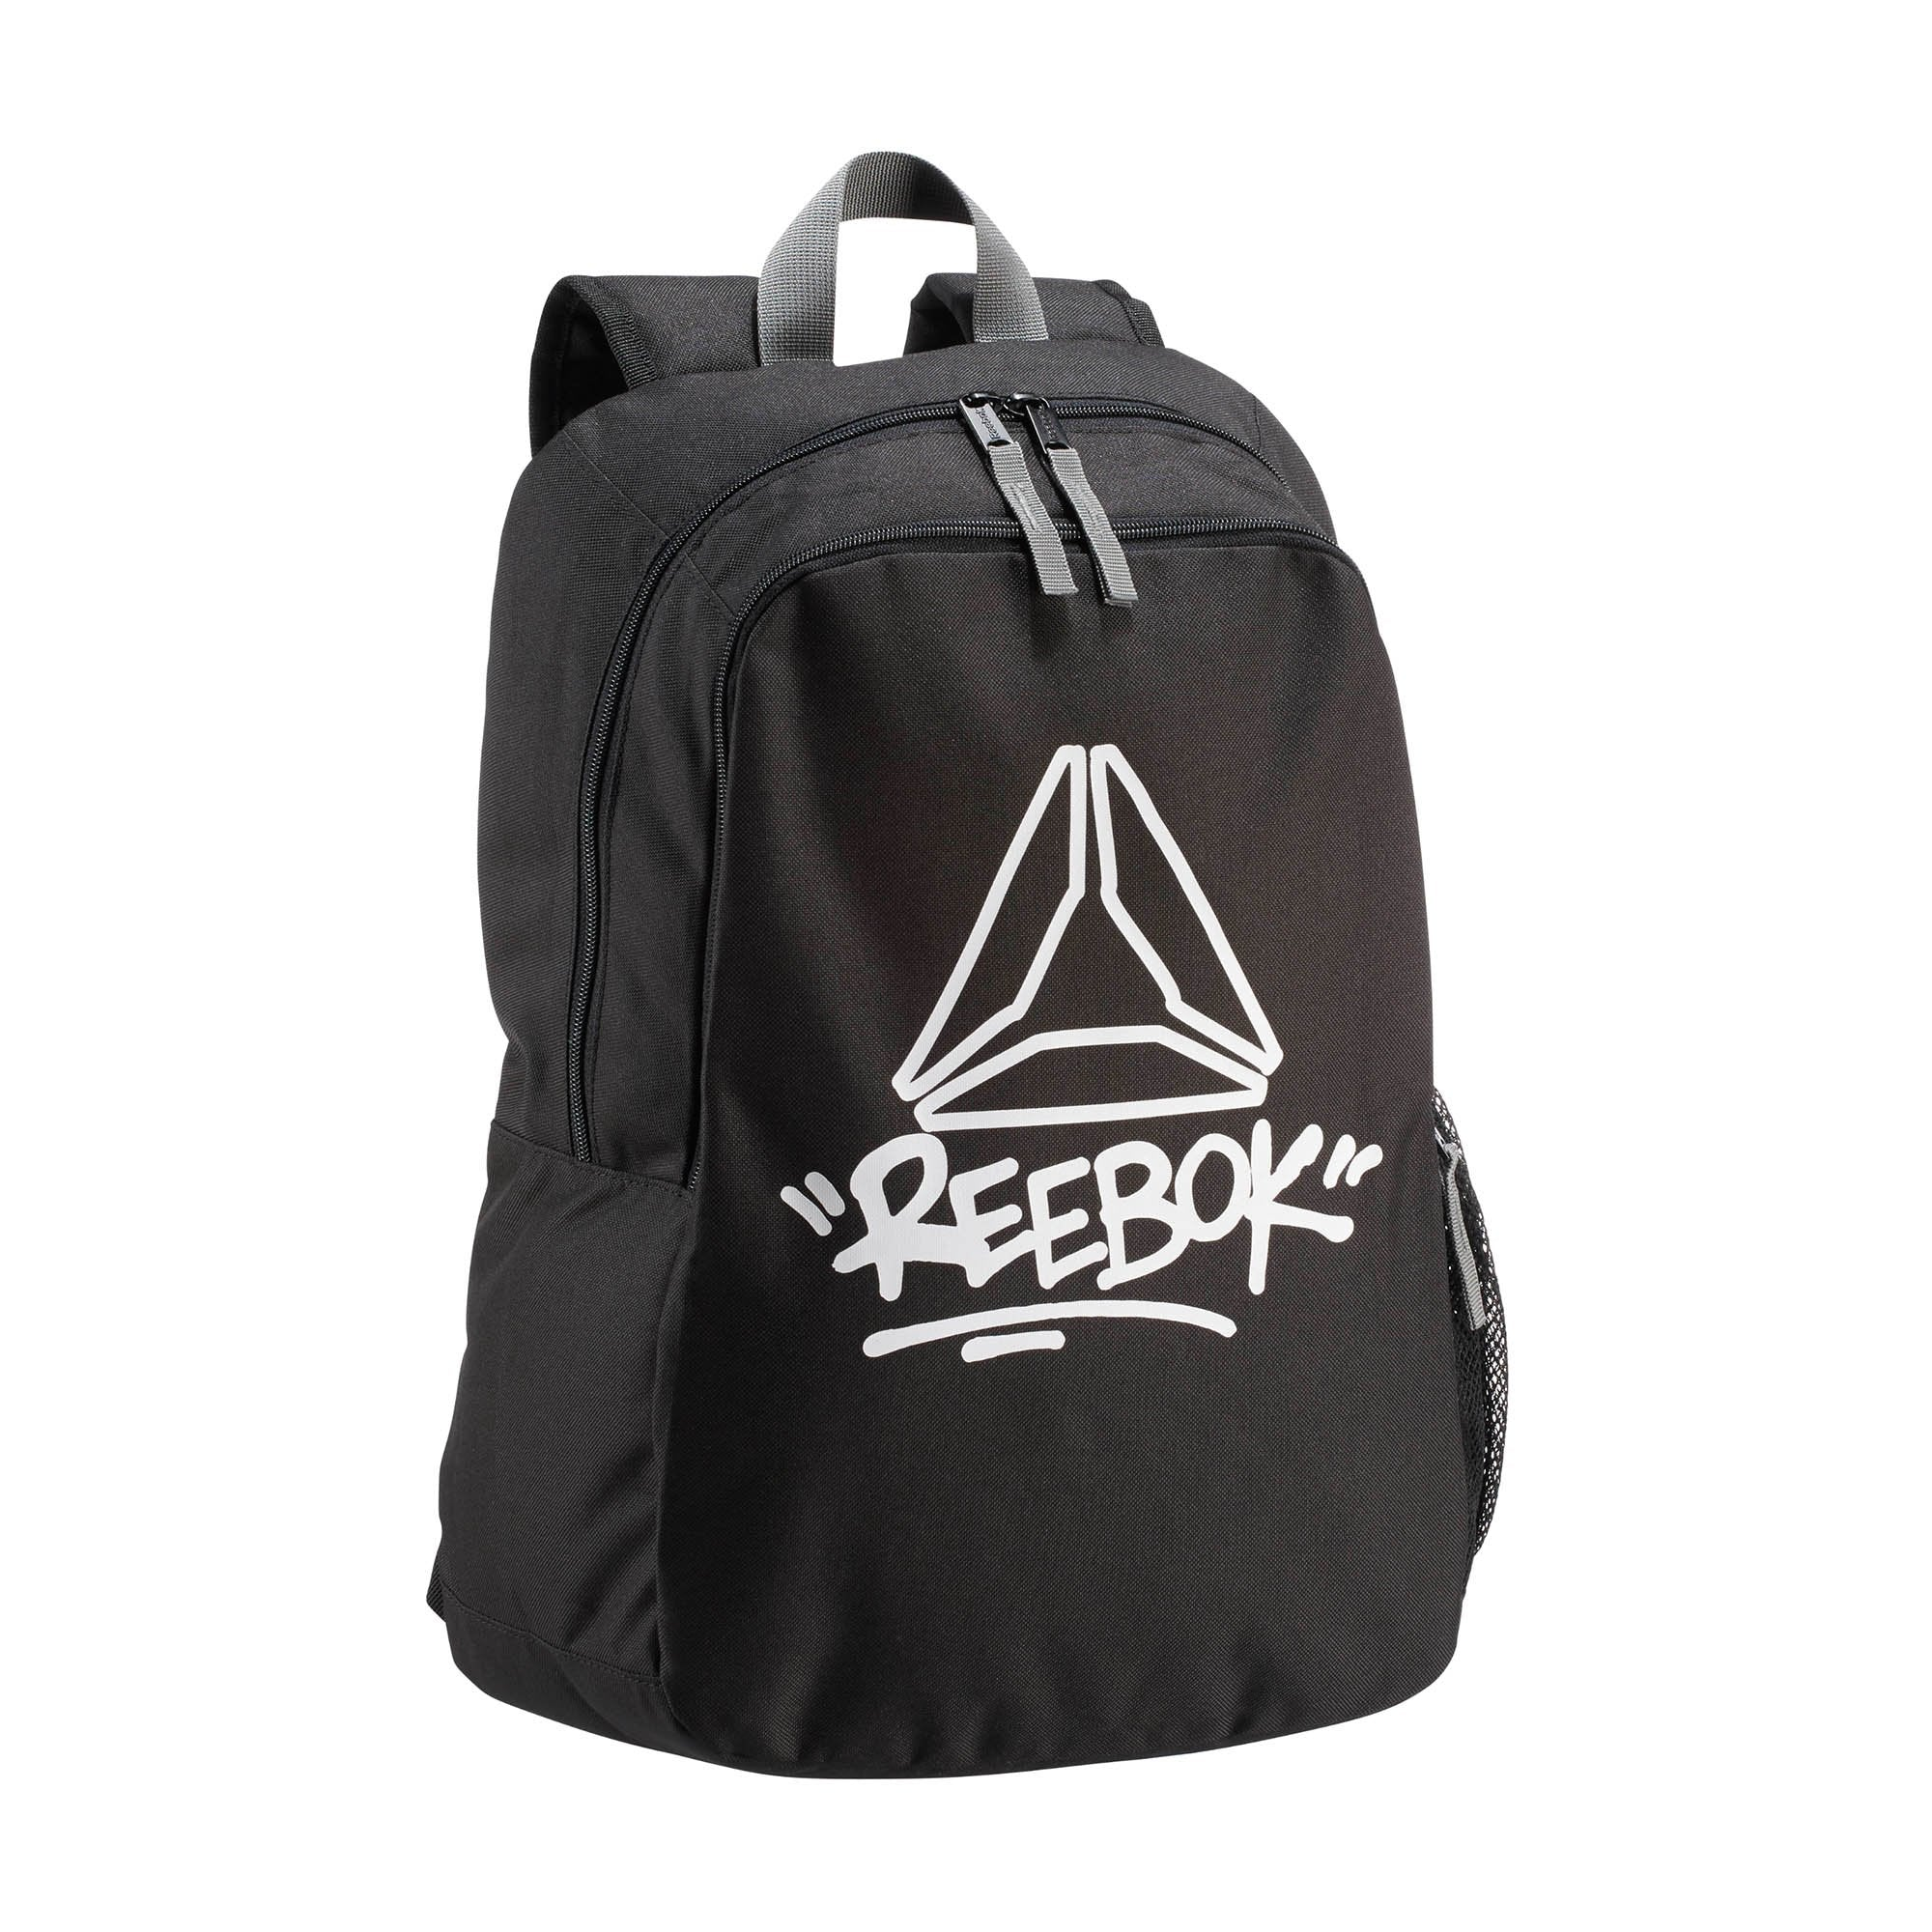 08017b2d02ac Buy Reebok Kids Foundation Backpack